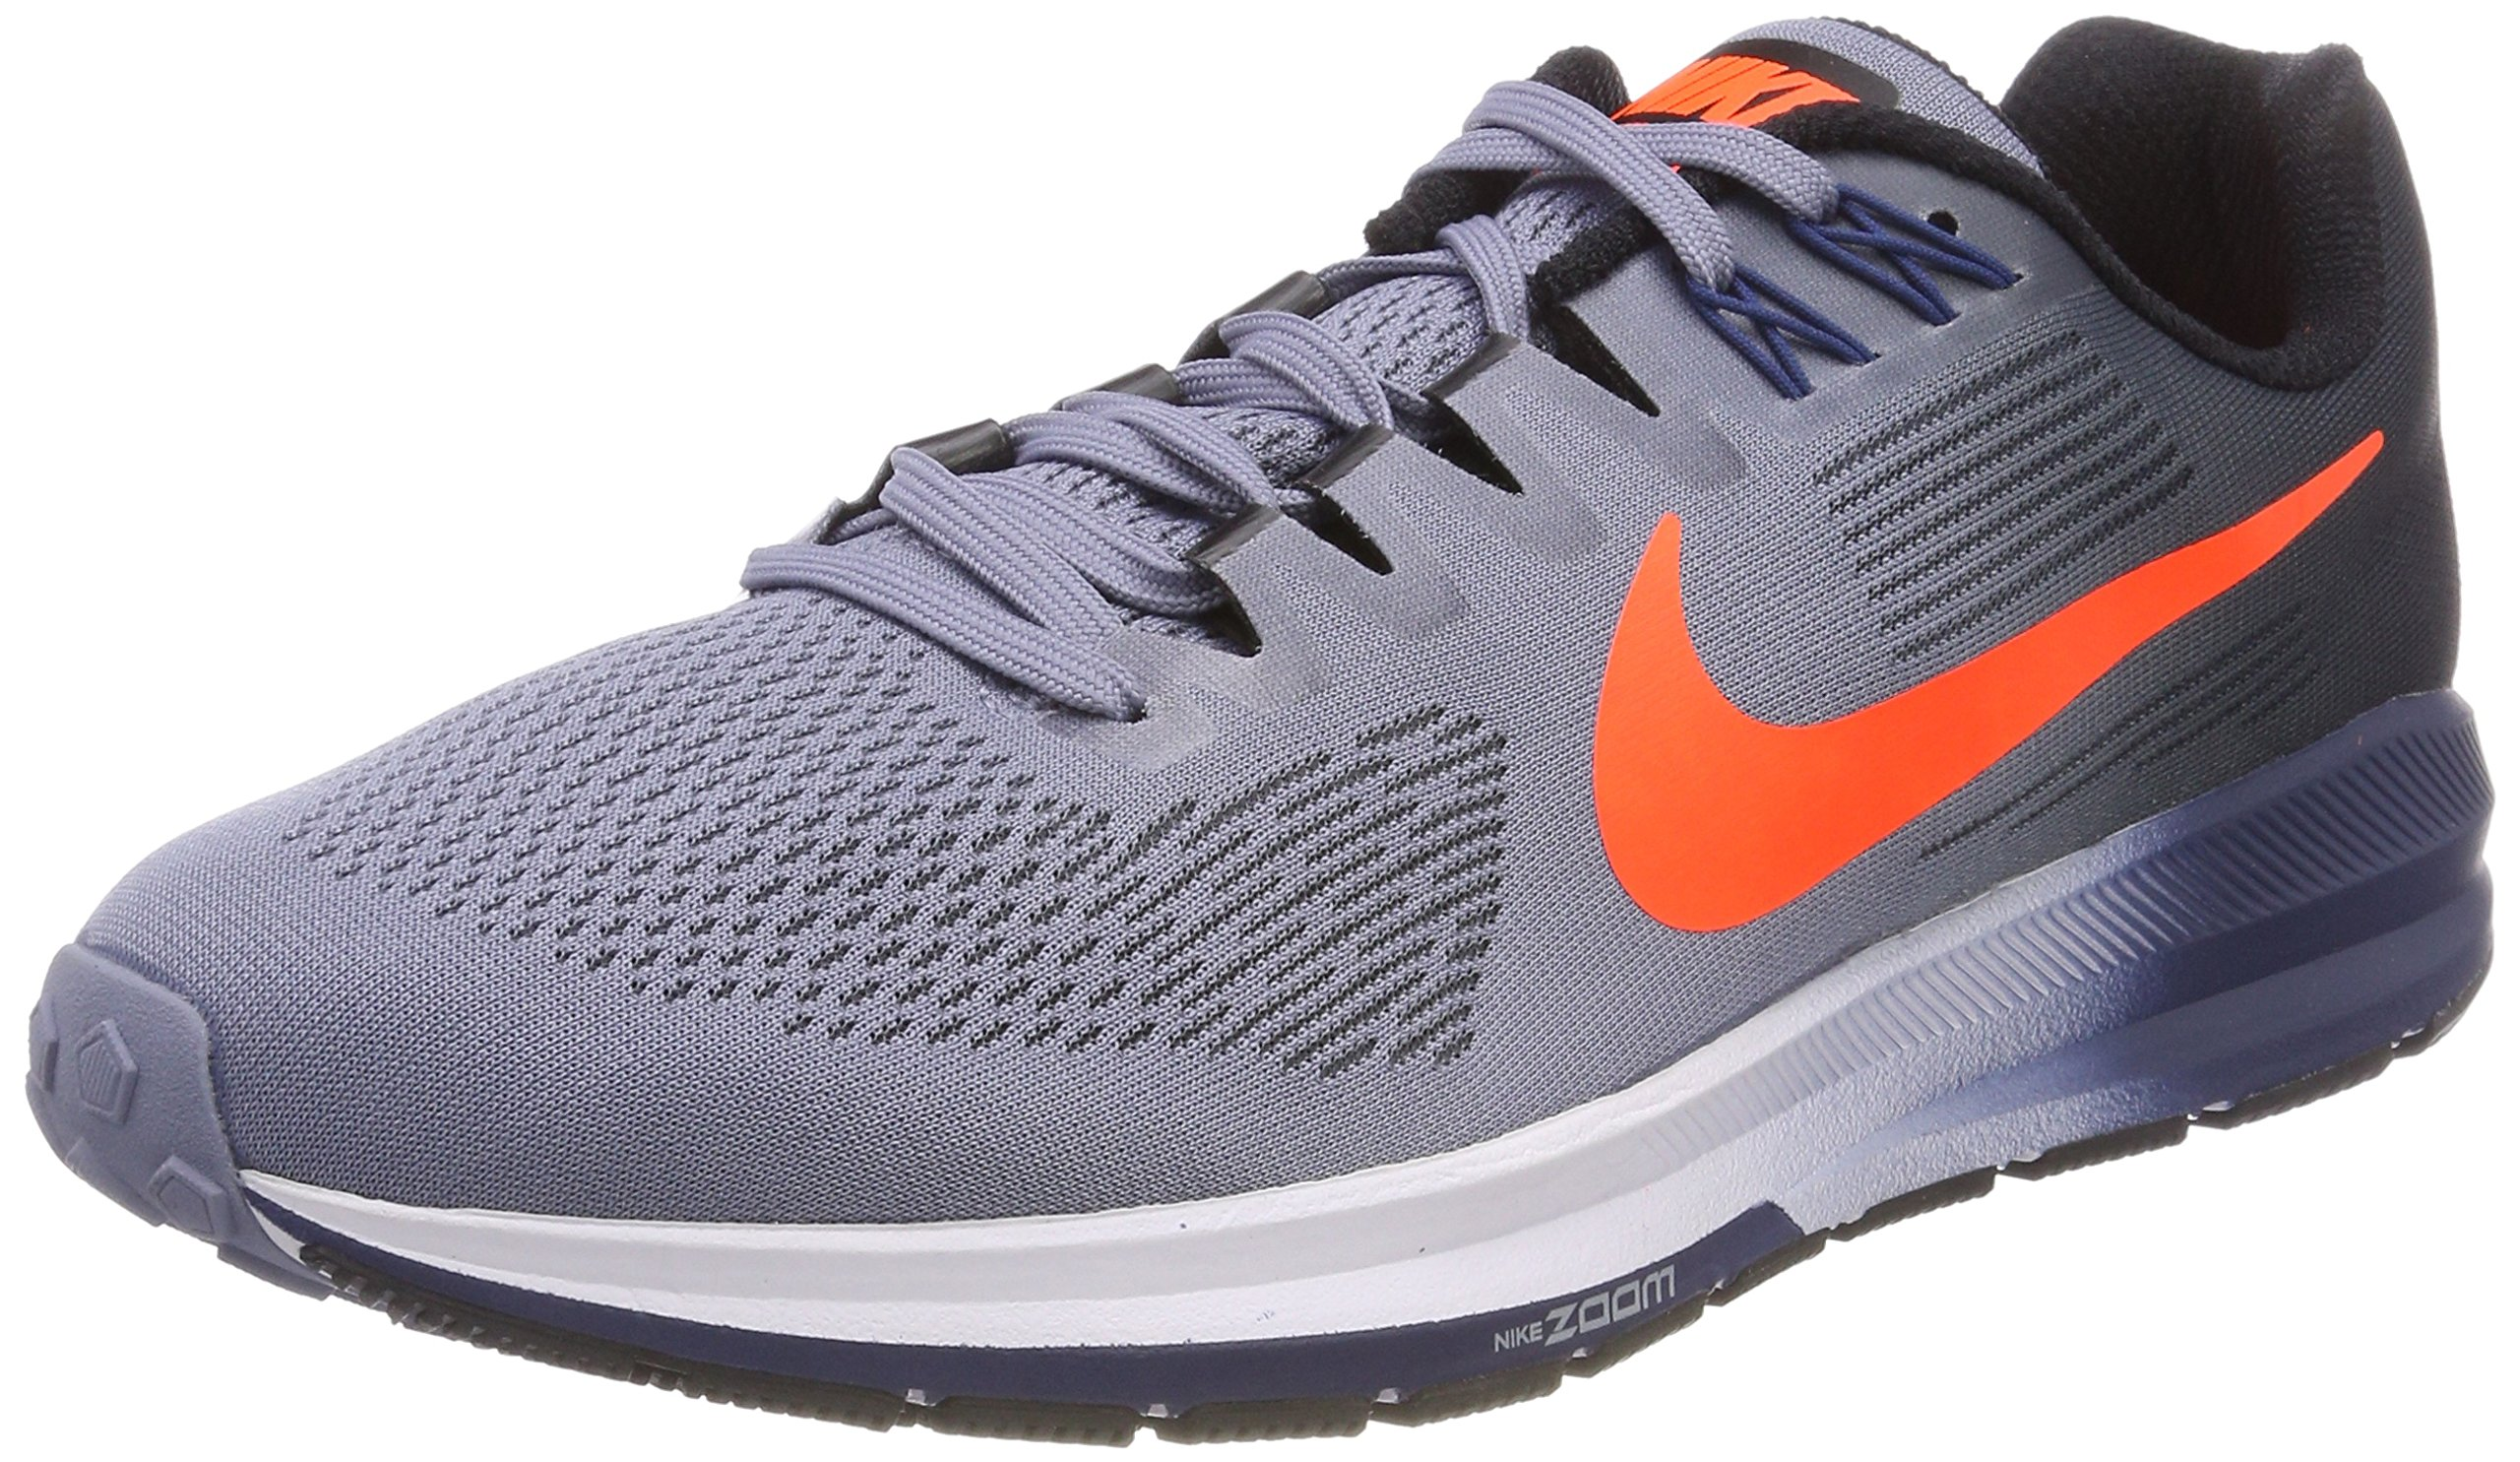 b67ef0f1144d Galleon - NIKE Men s Air Zoom Structure 21 Dark Sky Blue Total Crimson Running  Shoe 7.5 Men US